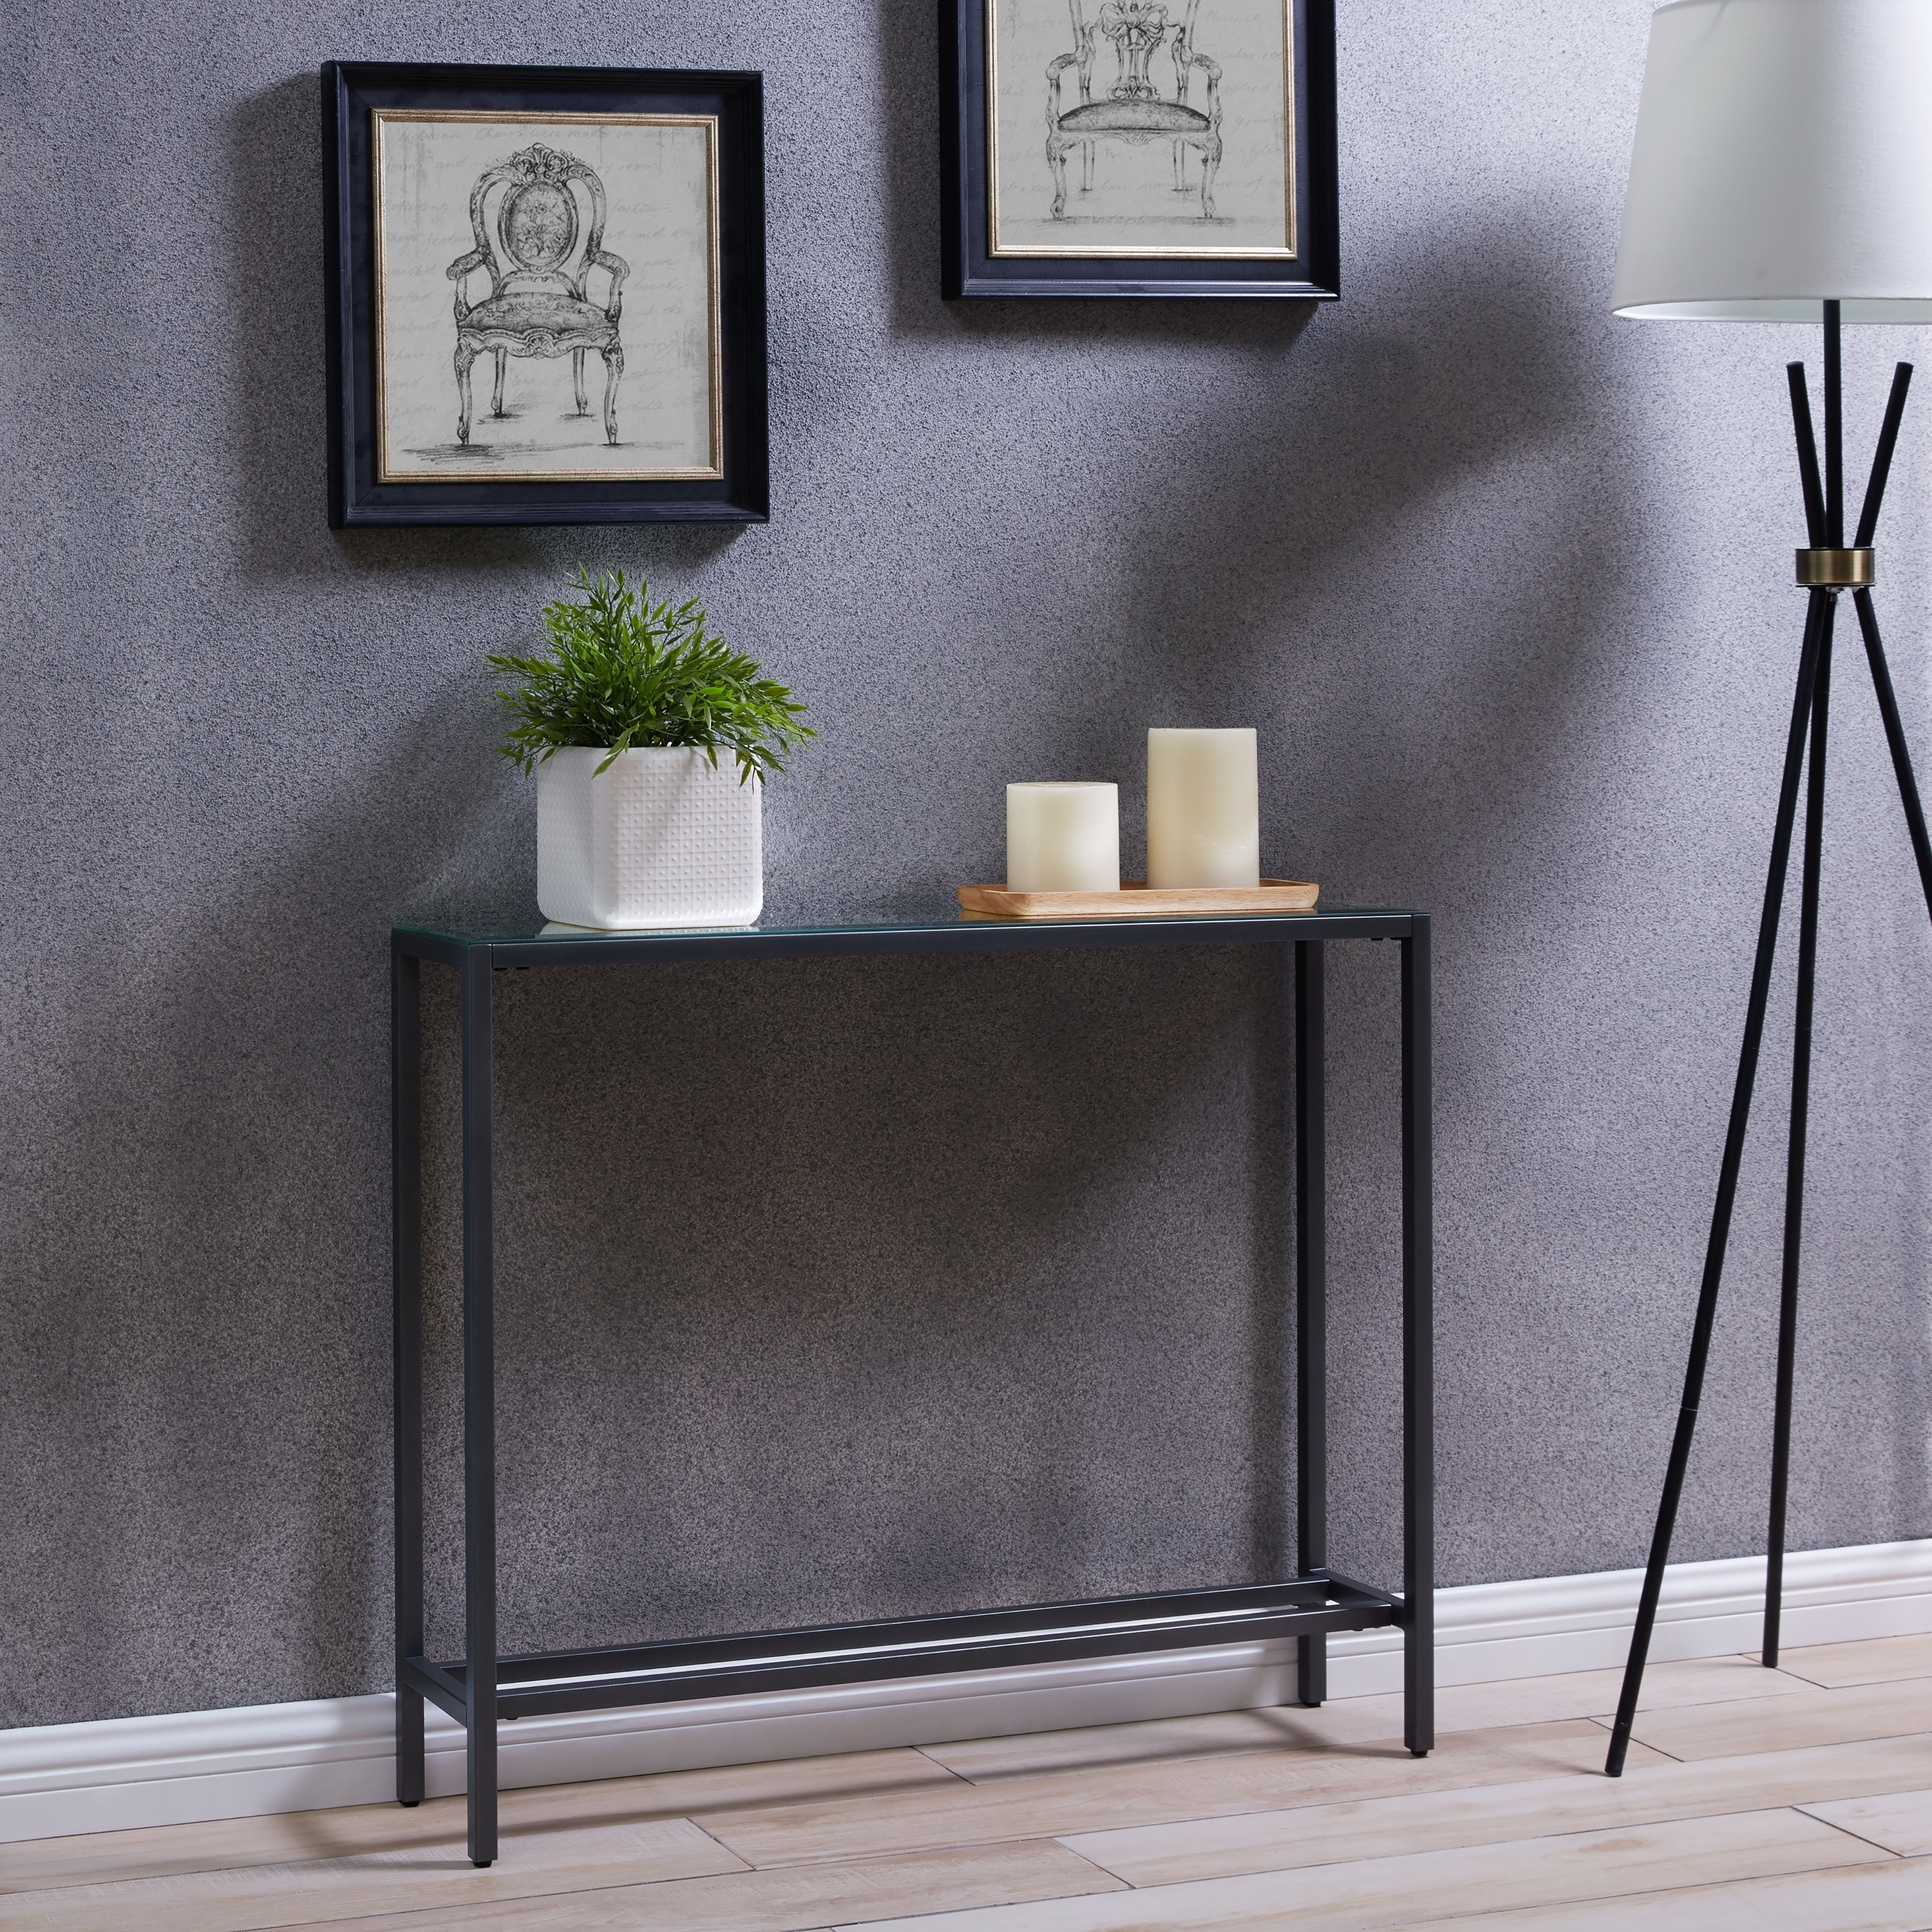 Shop Harper Blvd Dunbar Narrow Console Table W/ Mirrored Top   Gold   On  Sale   Free Shipping Today   Overstock   18157315